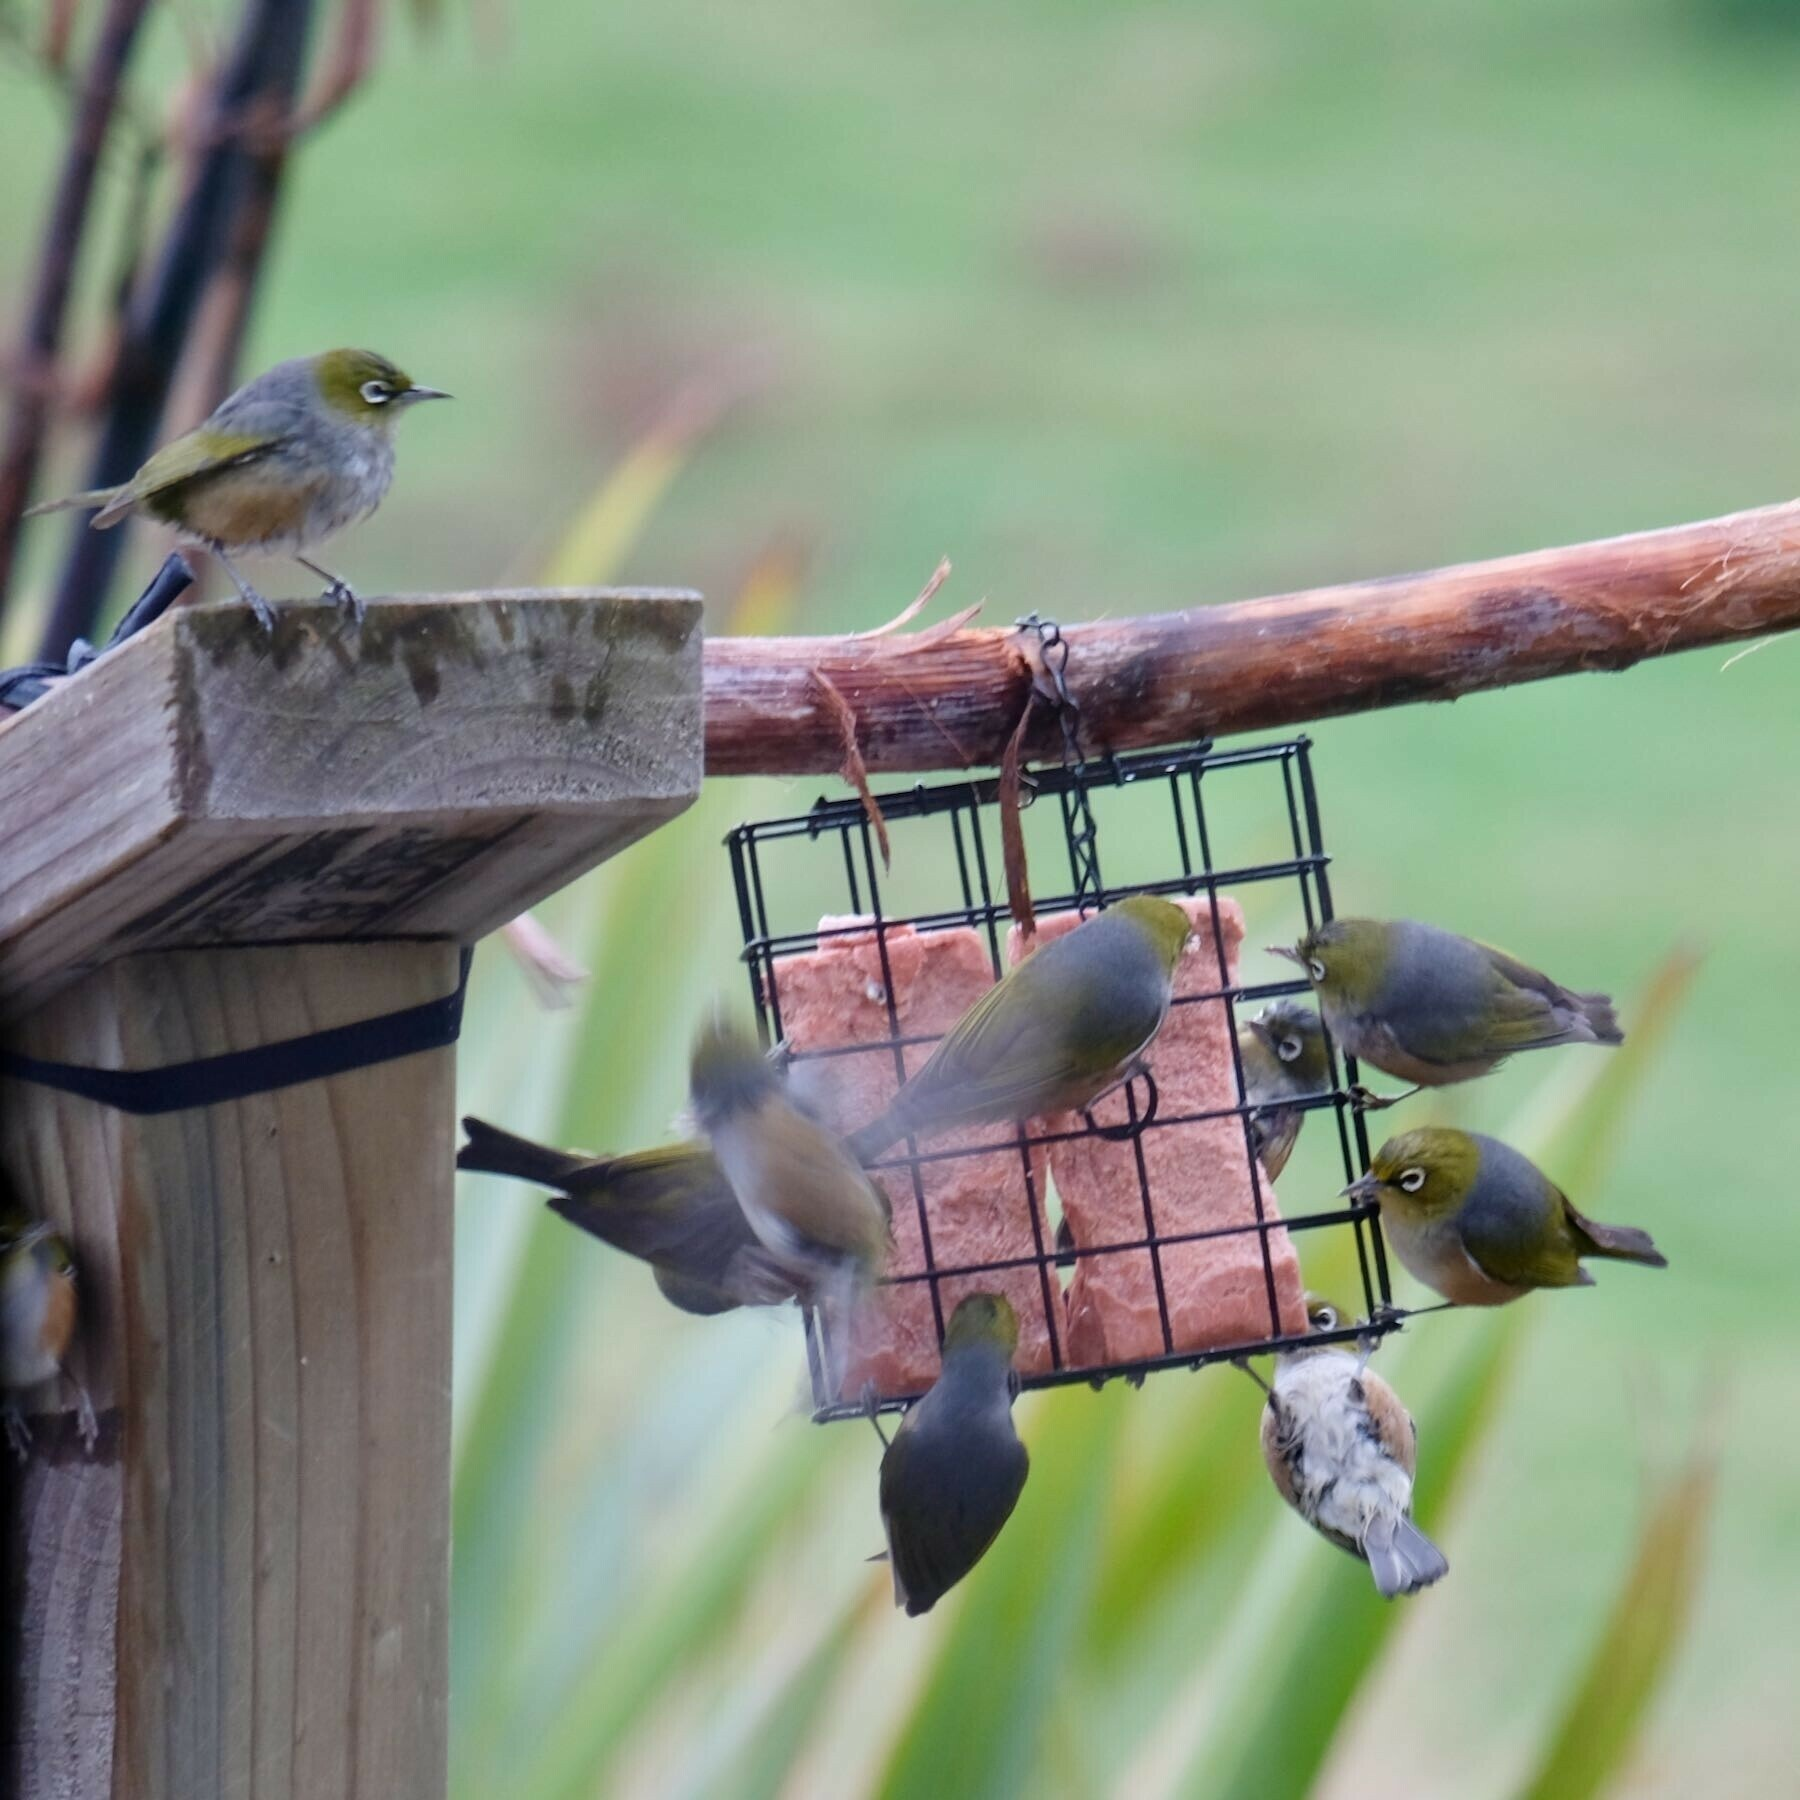 Closer view of numerous birds at the feeder.